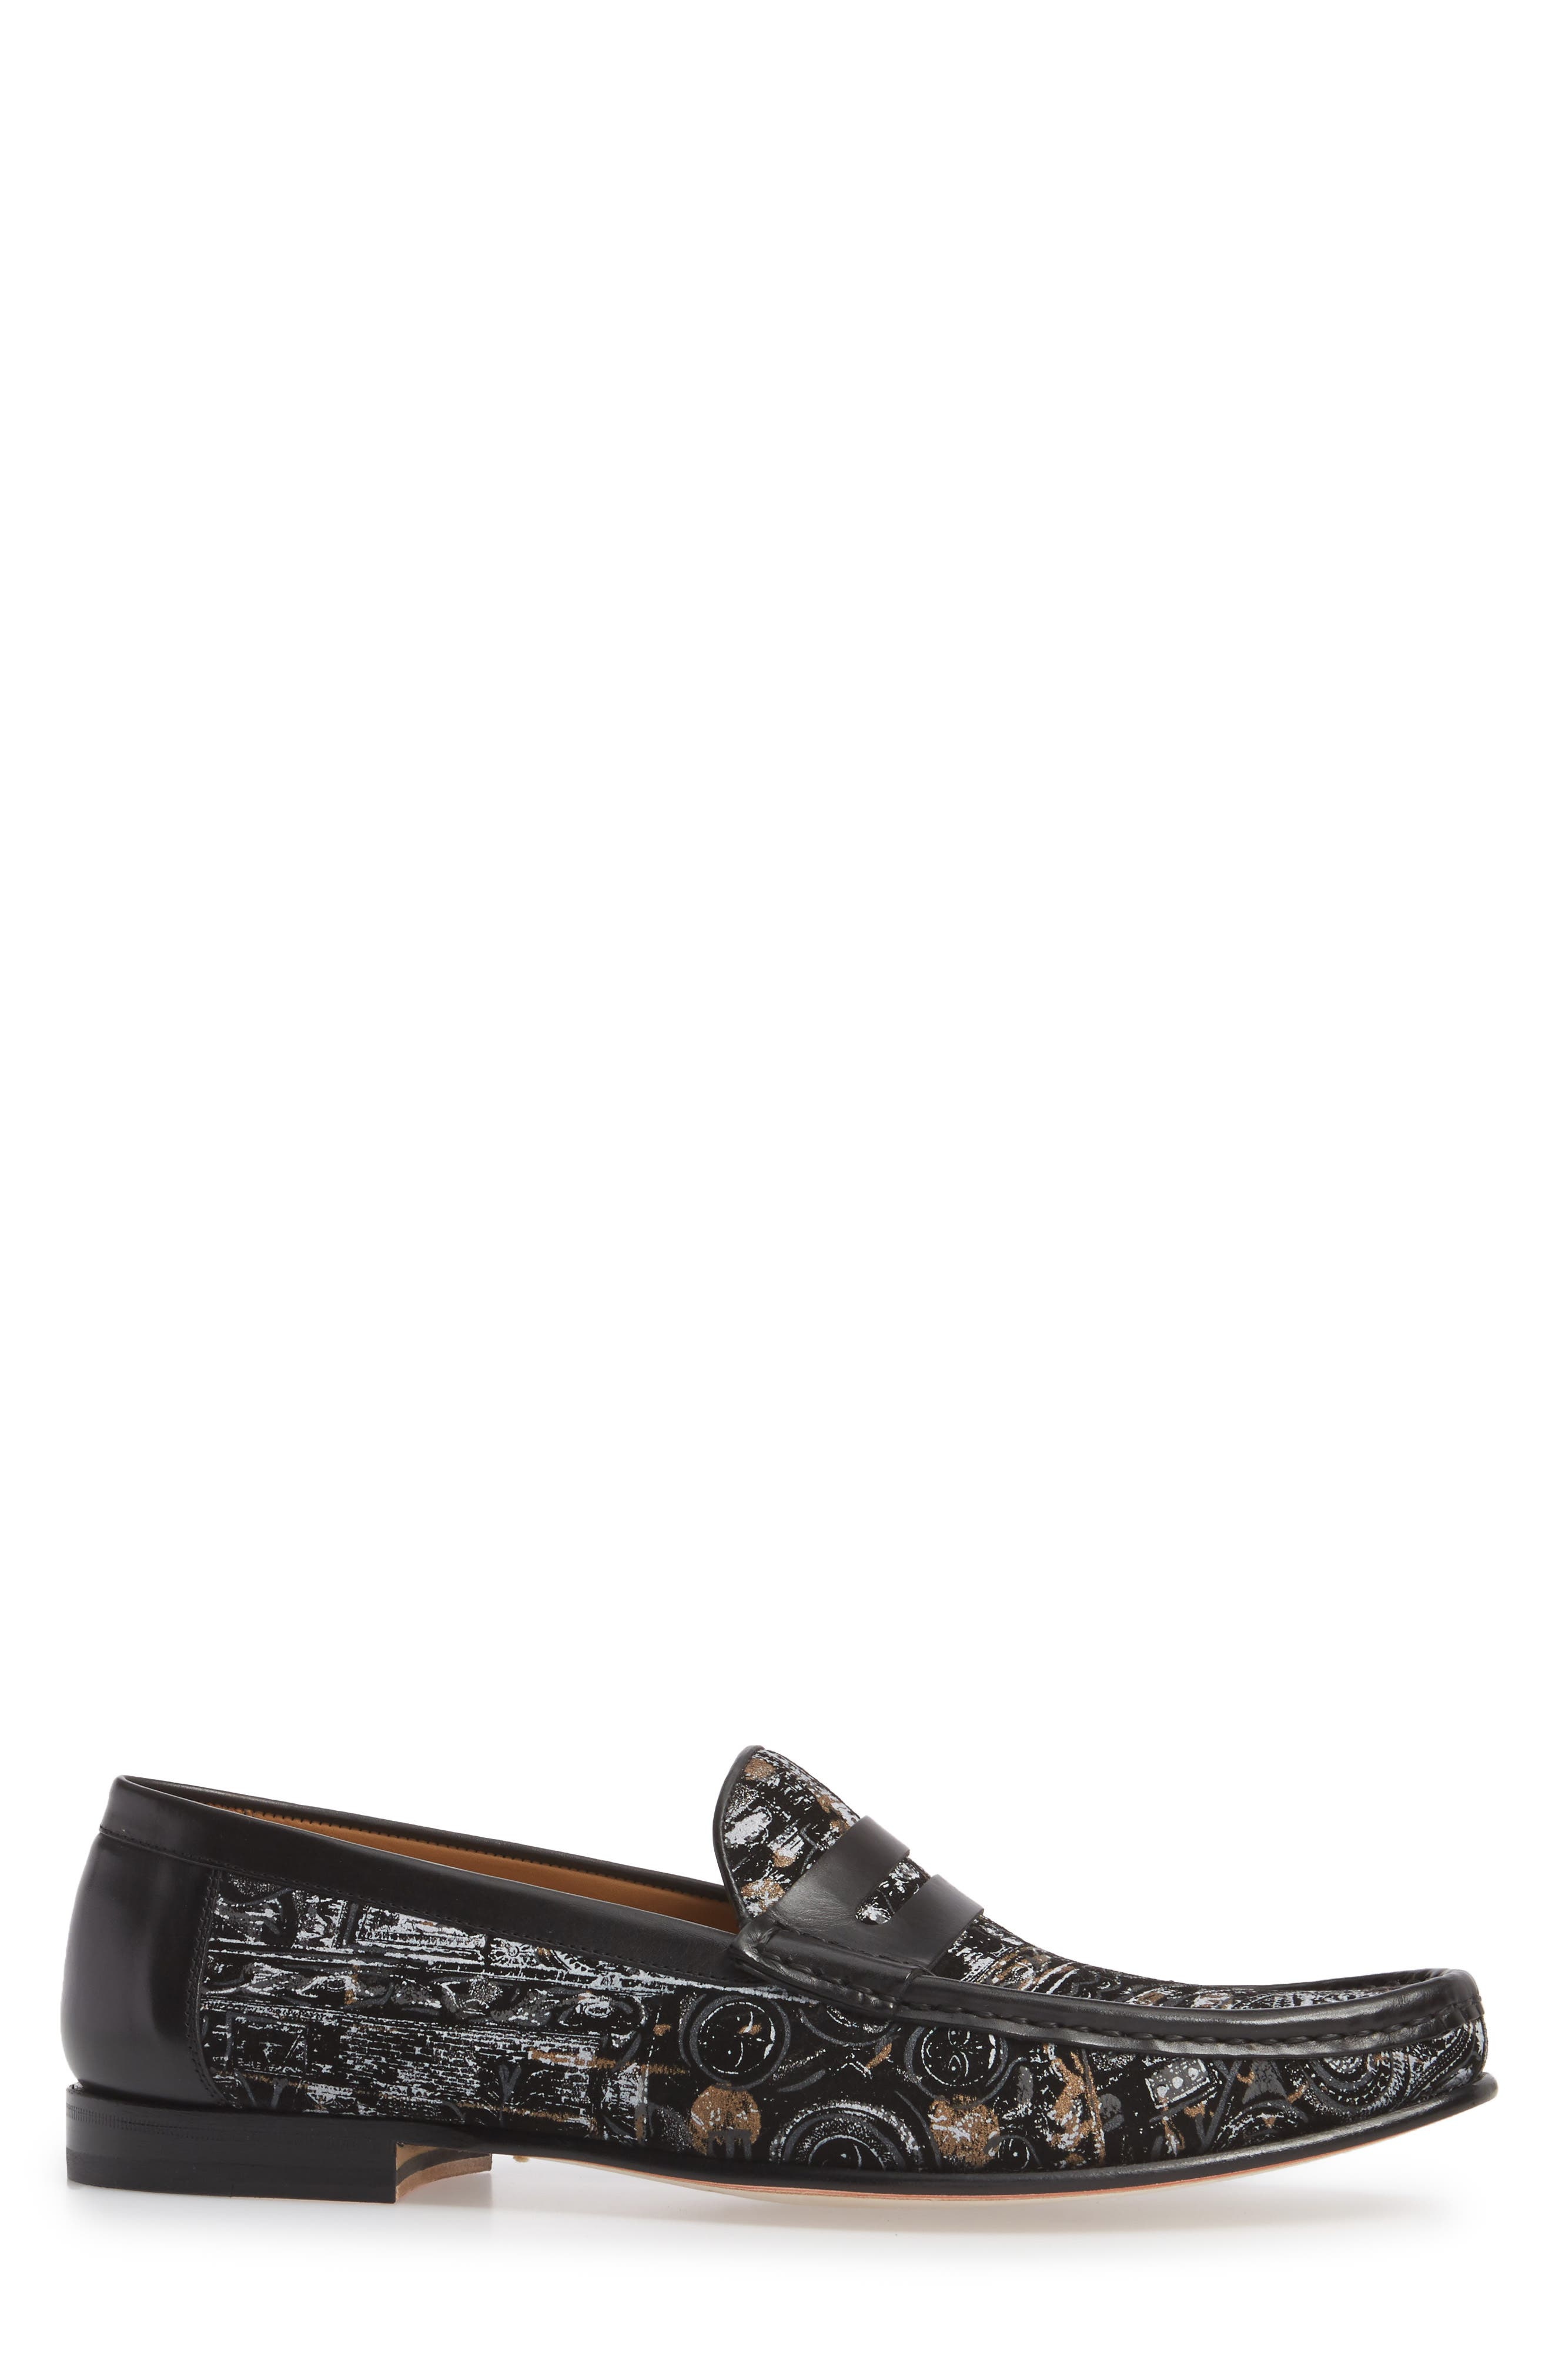 Laries II Penny Loafer,                             Alternate thumbnail 3, color,                             Black Suede/ Leather